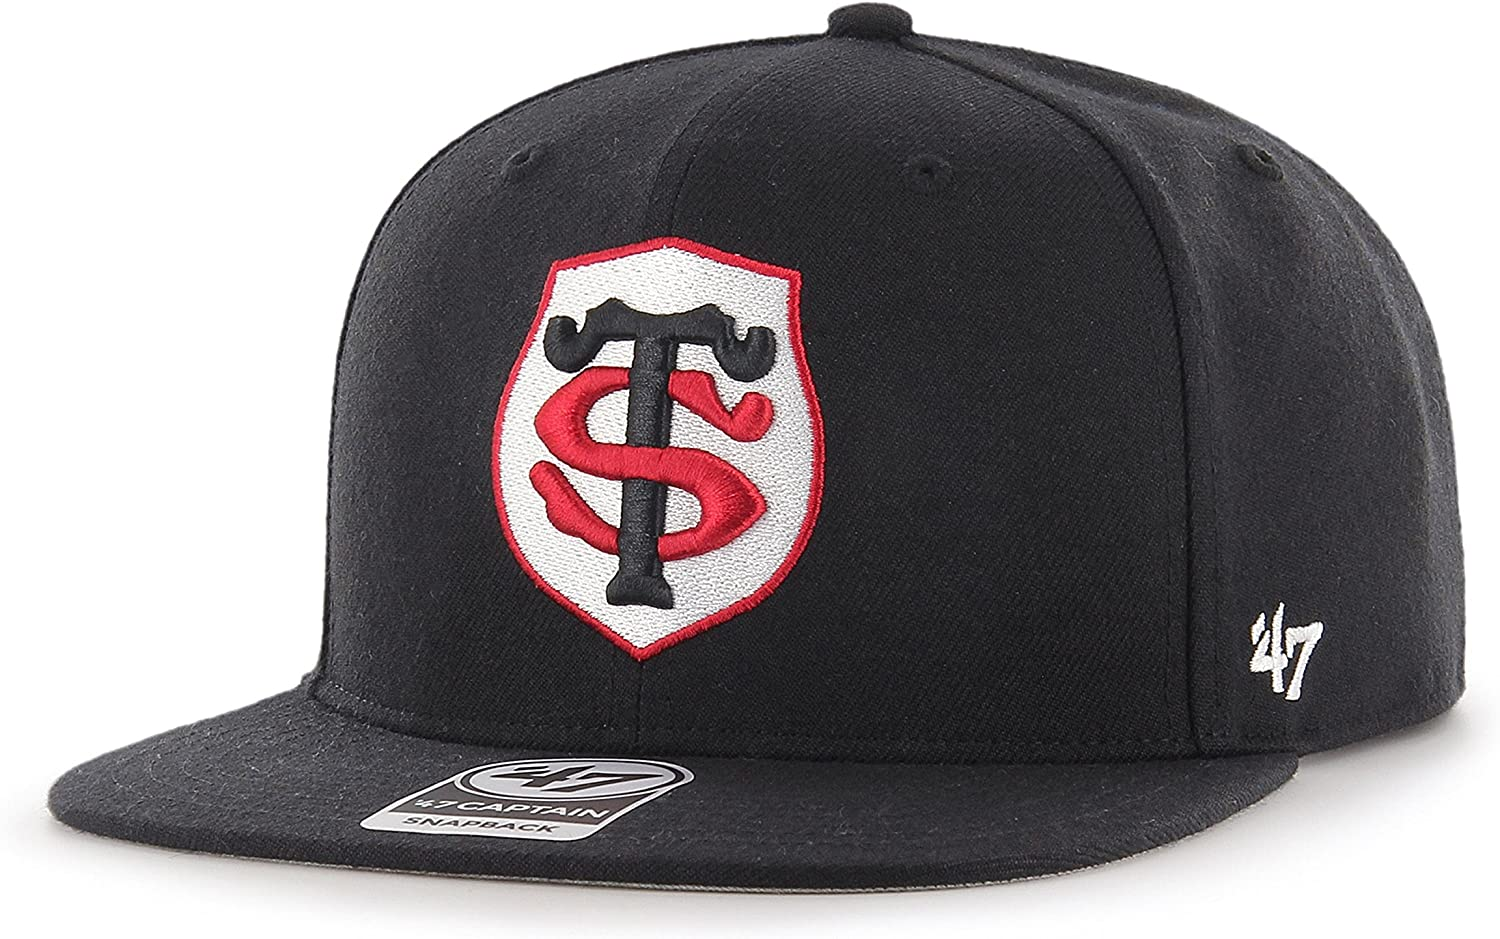 Taille réglable 47 BRAND Collection officielle Toulouse Casquette rugby STADE TOULOUSAIN